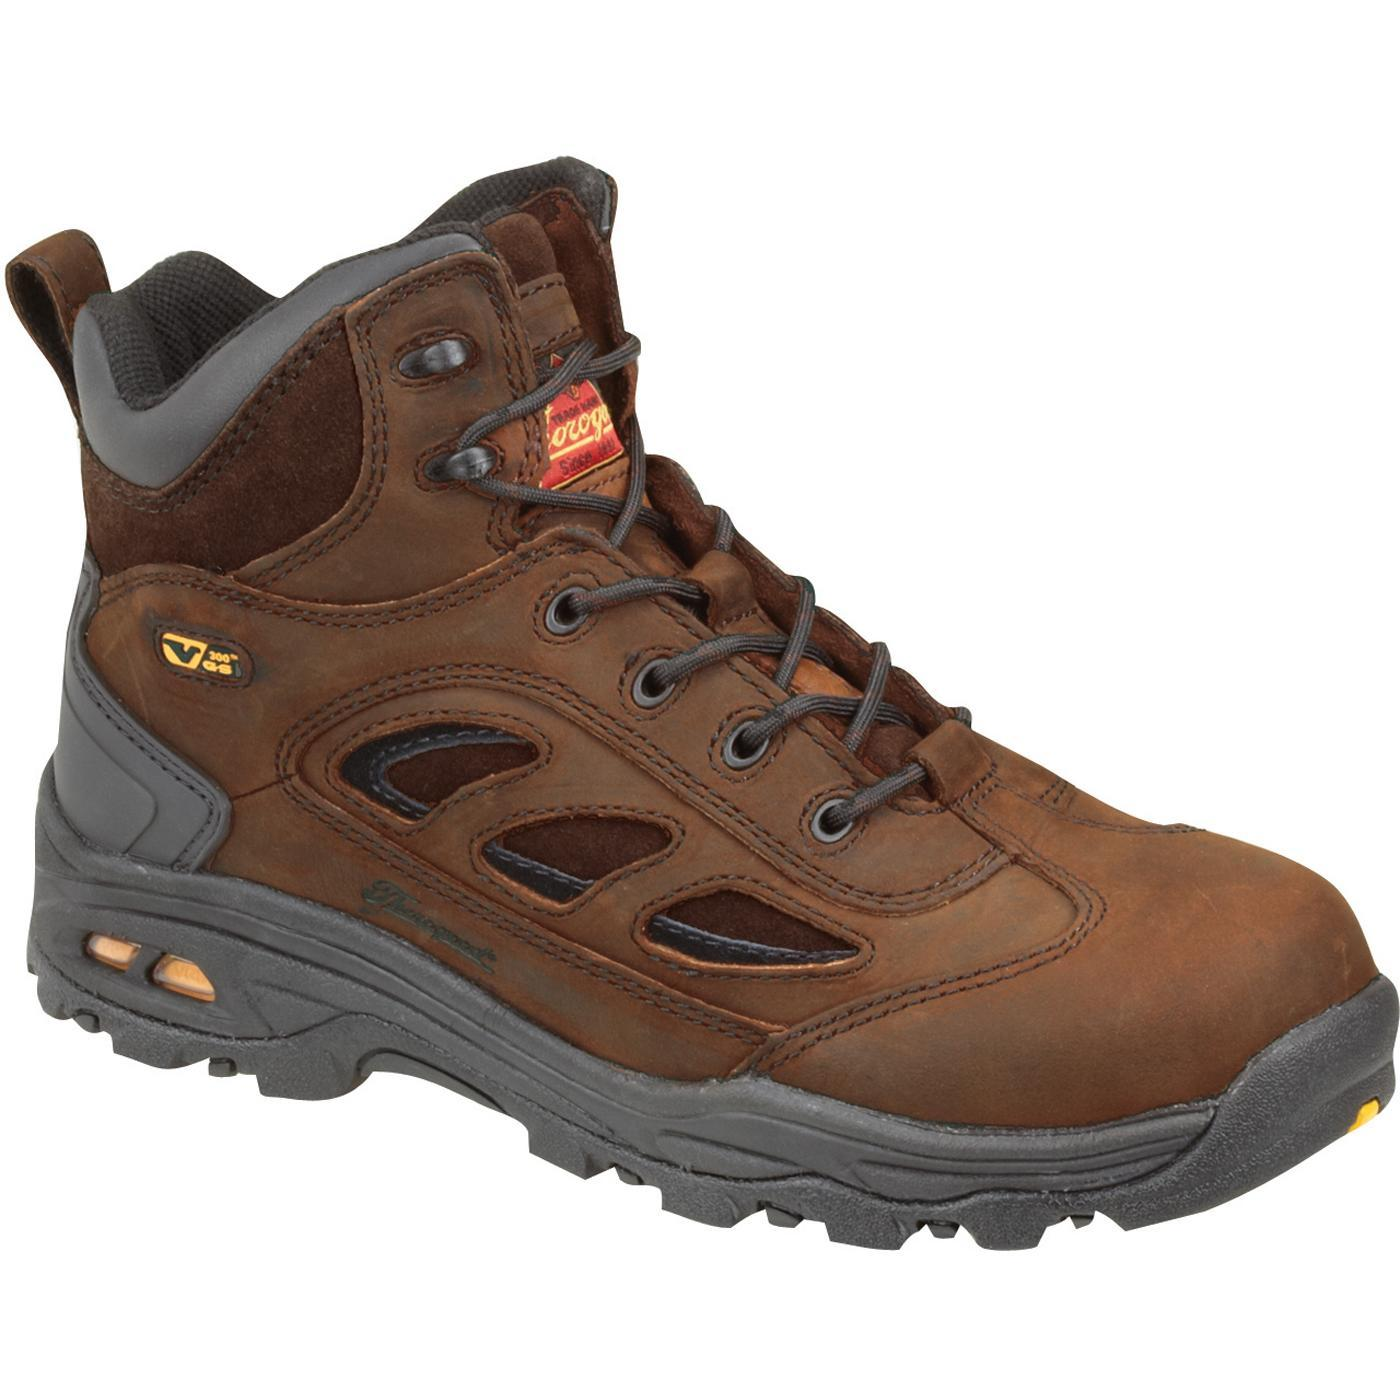 59962ade69d Thorogood VGS Composite Toe SD Hiker Work Shoe